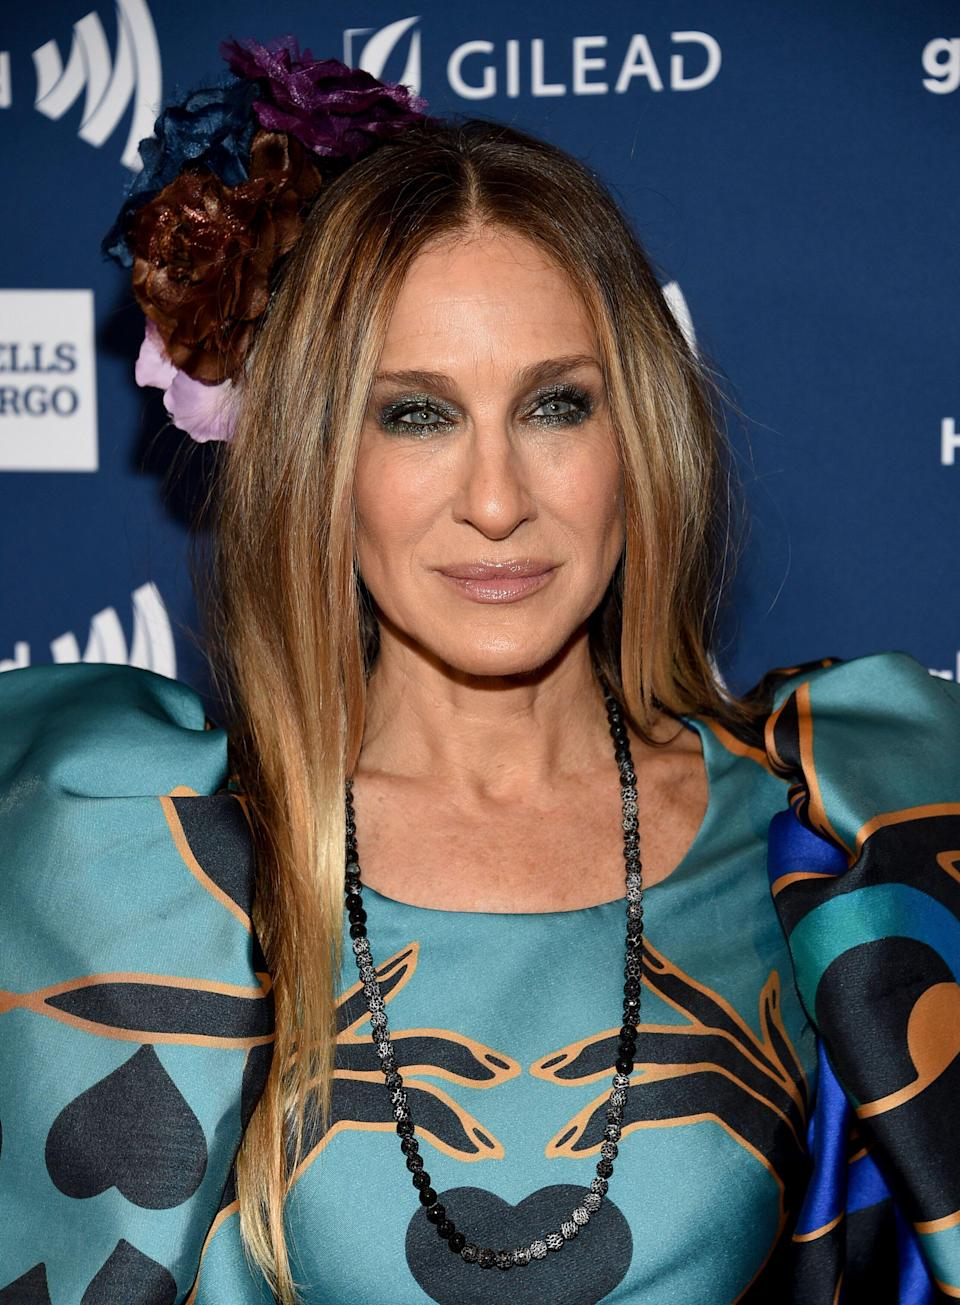 Sarah Jessica Parker attends the 30th annual GLAAD Media Awards at the New York Hilton Midtown on Saturday, May 4, 2019, in New York. (Photo by Evan Agostini/Invision/AP)